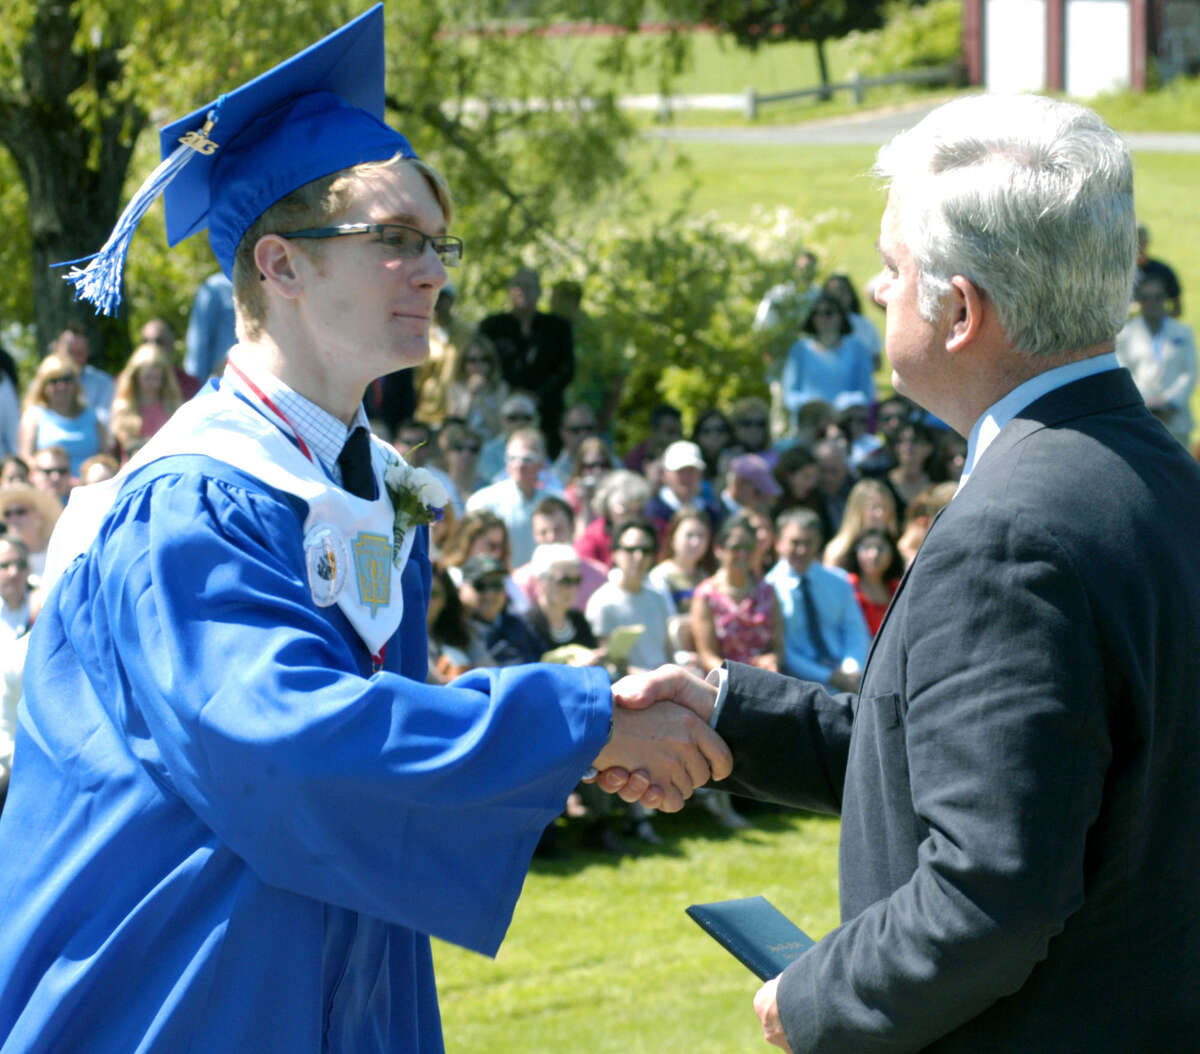 Ellery Rourke offers Region 12 Board of Education Chairman James Hirschfield an appreciative handshake as he receives his diploma Saturday during Shepaug Valley High School's commencement ceremony for the Class of 2013. June 15, 2013